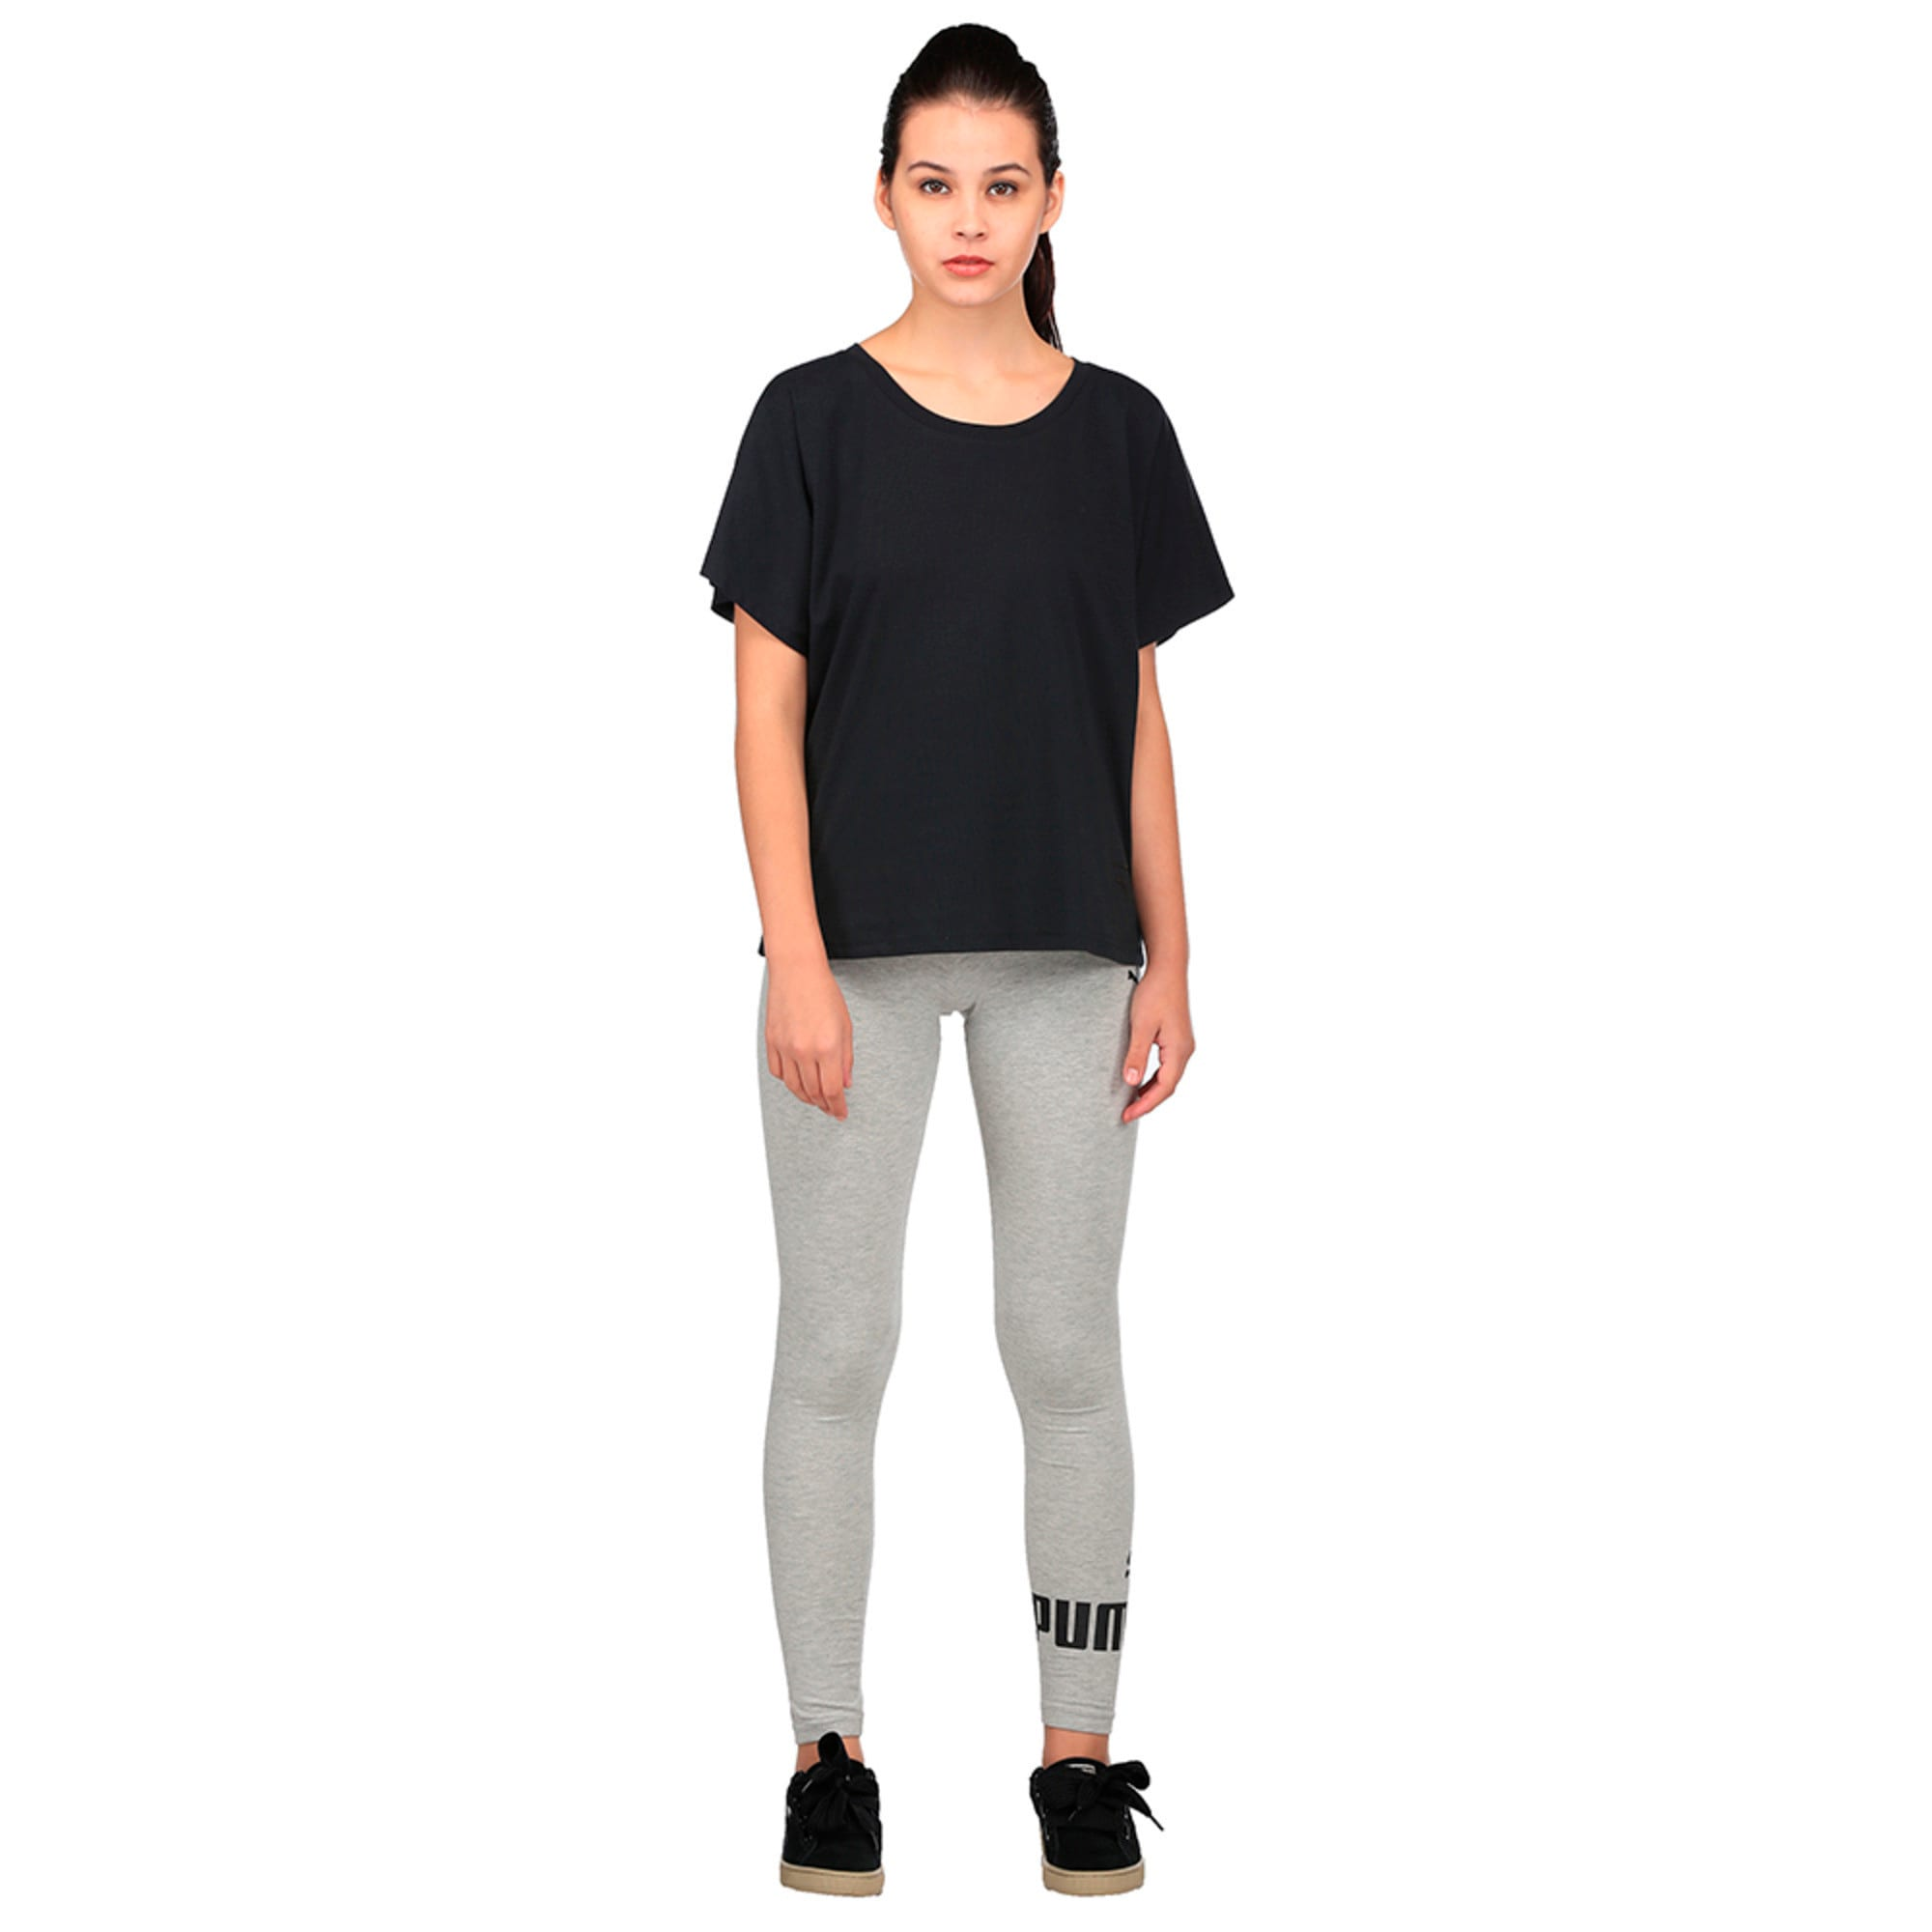 Thumbnail 4 of Evolution Women's T-Shirt, Puma Black, medium-IND